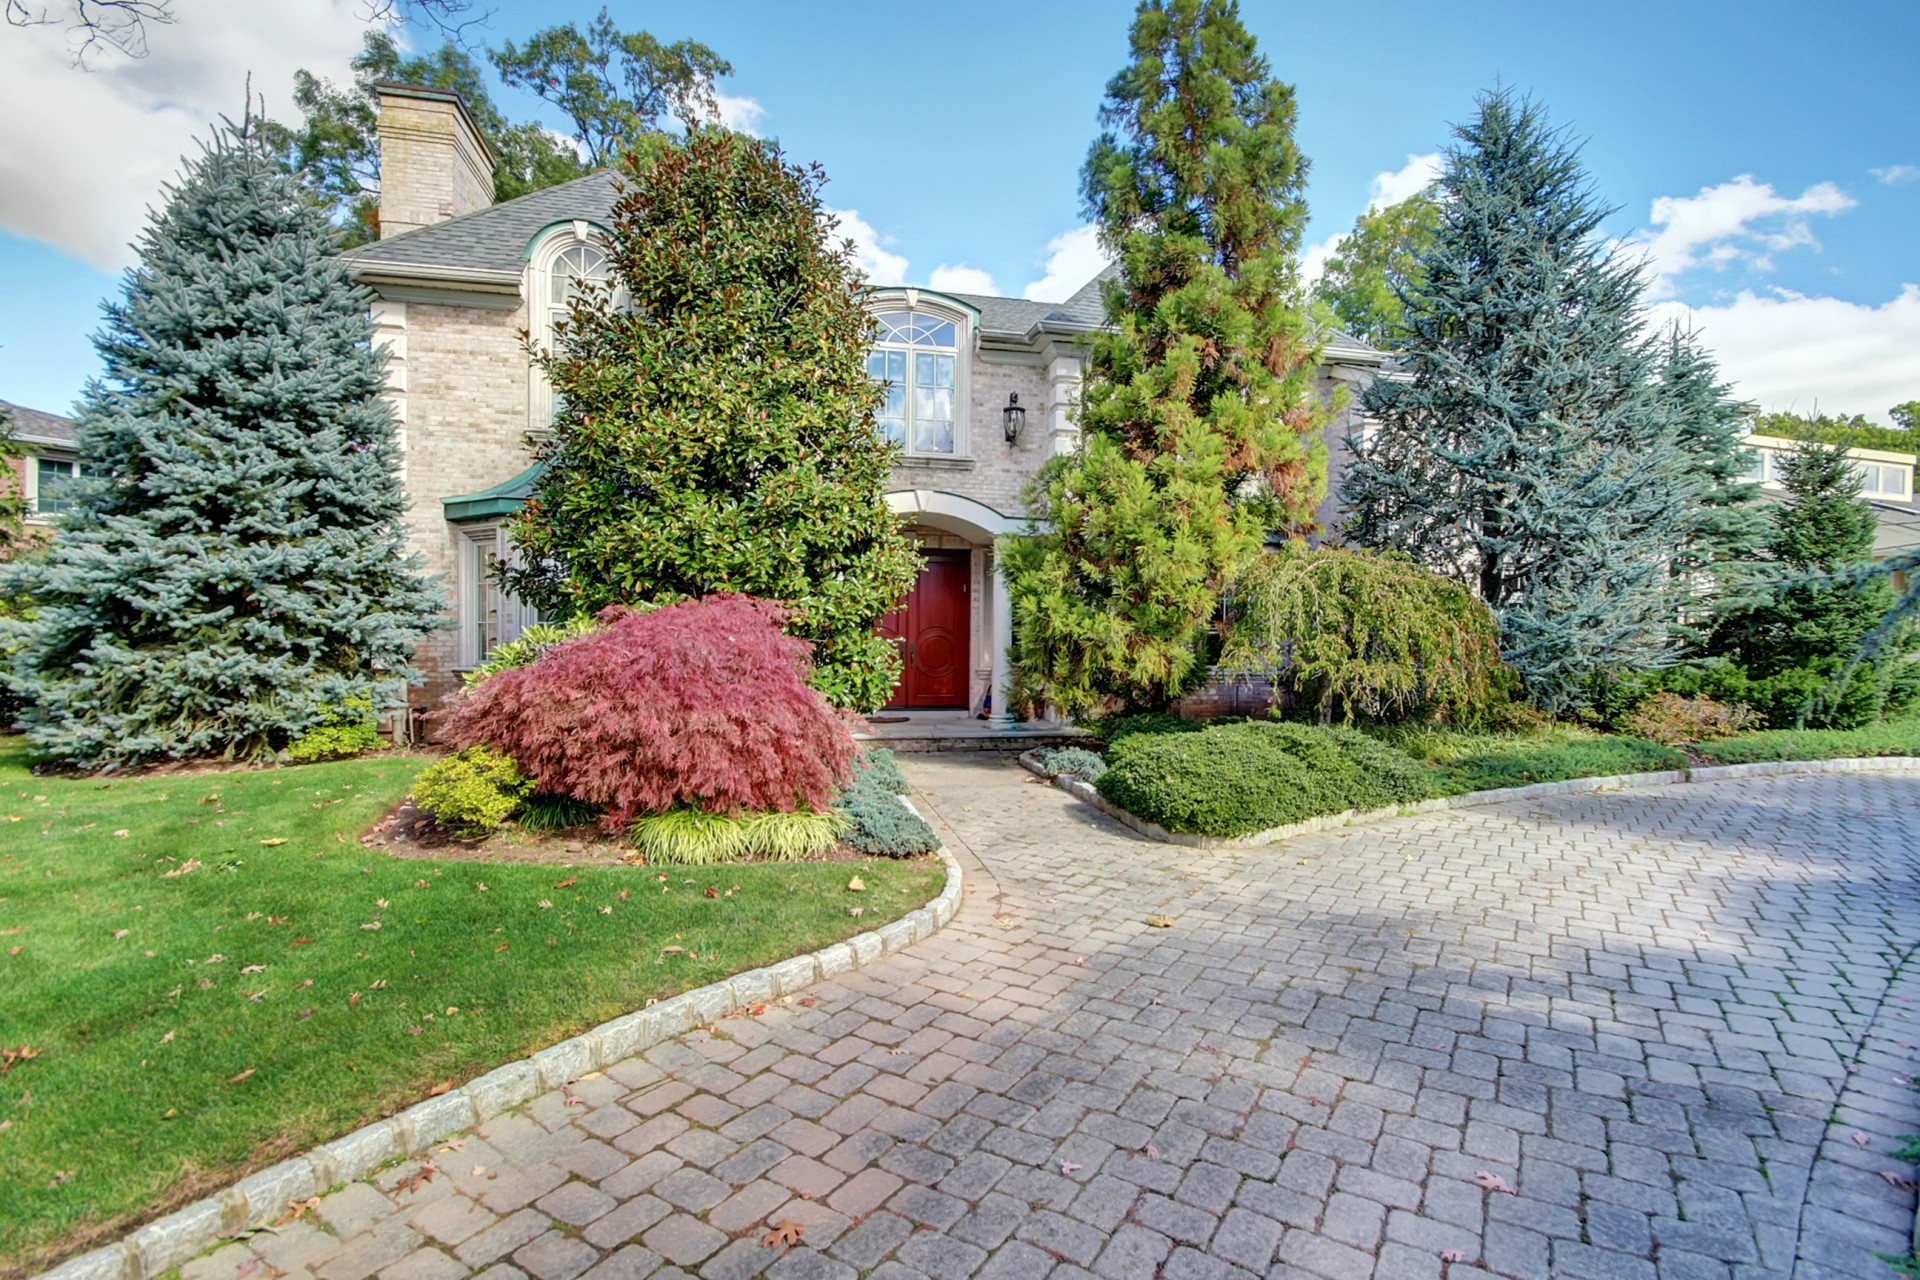 Single Family Home for Sale at Prime Location 14 Samford Dr Englewood Cliffs, New Jersey, 07632 United States